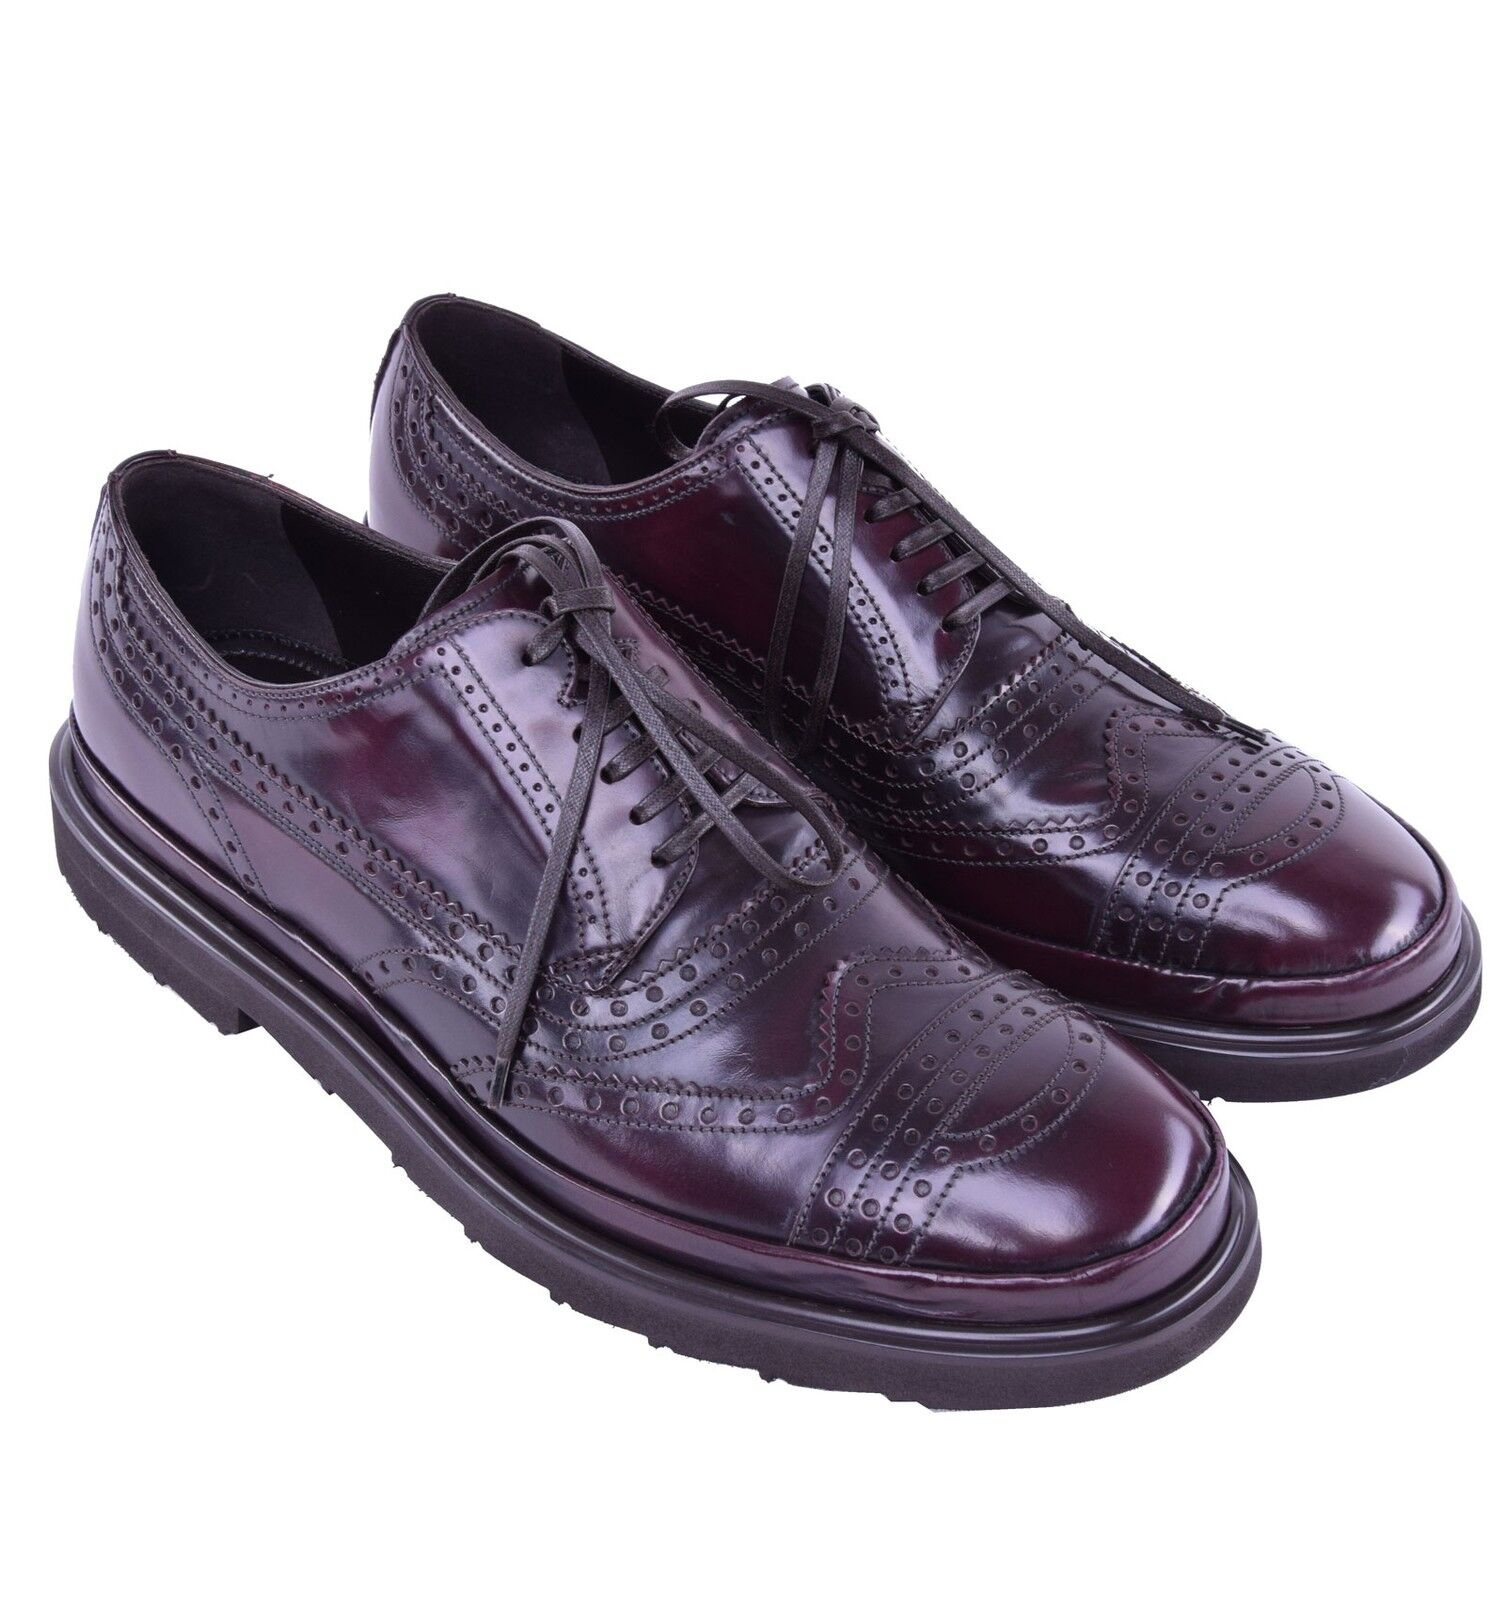 DOLCE & GABBANA Leichte Budapester Schuhe Bordeaux Rot Solid Shoes Red 03942